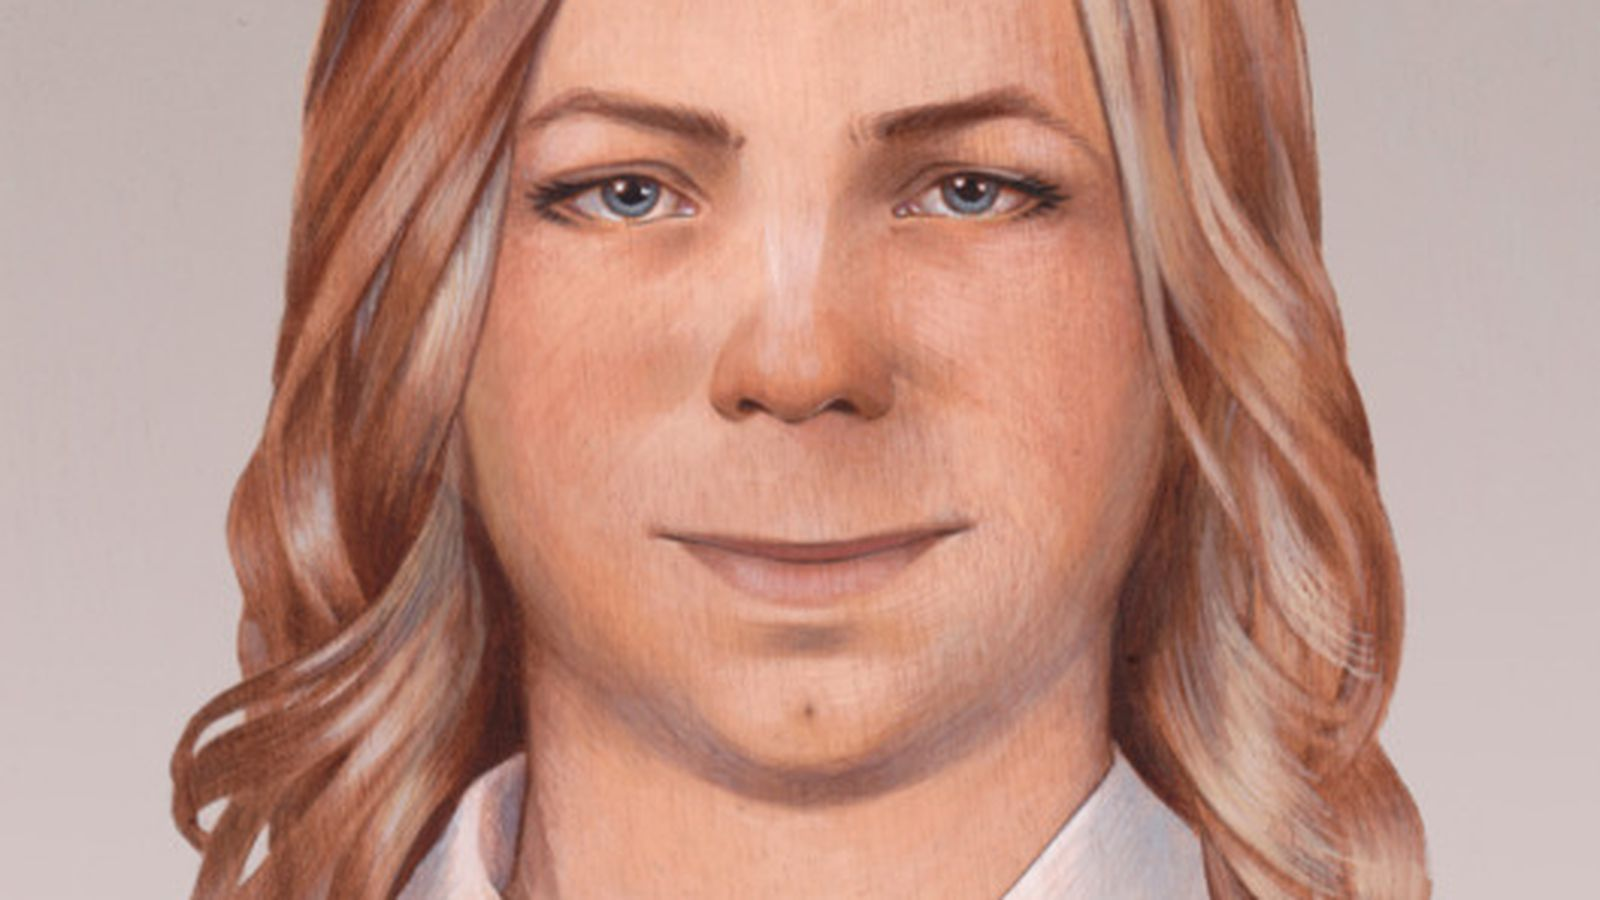 Chelsea Manning has been released from prison